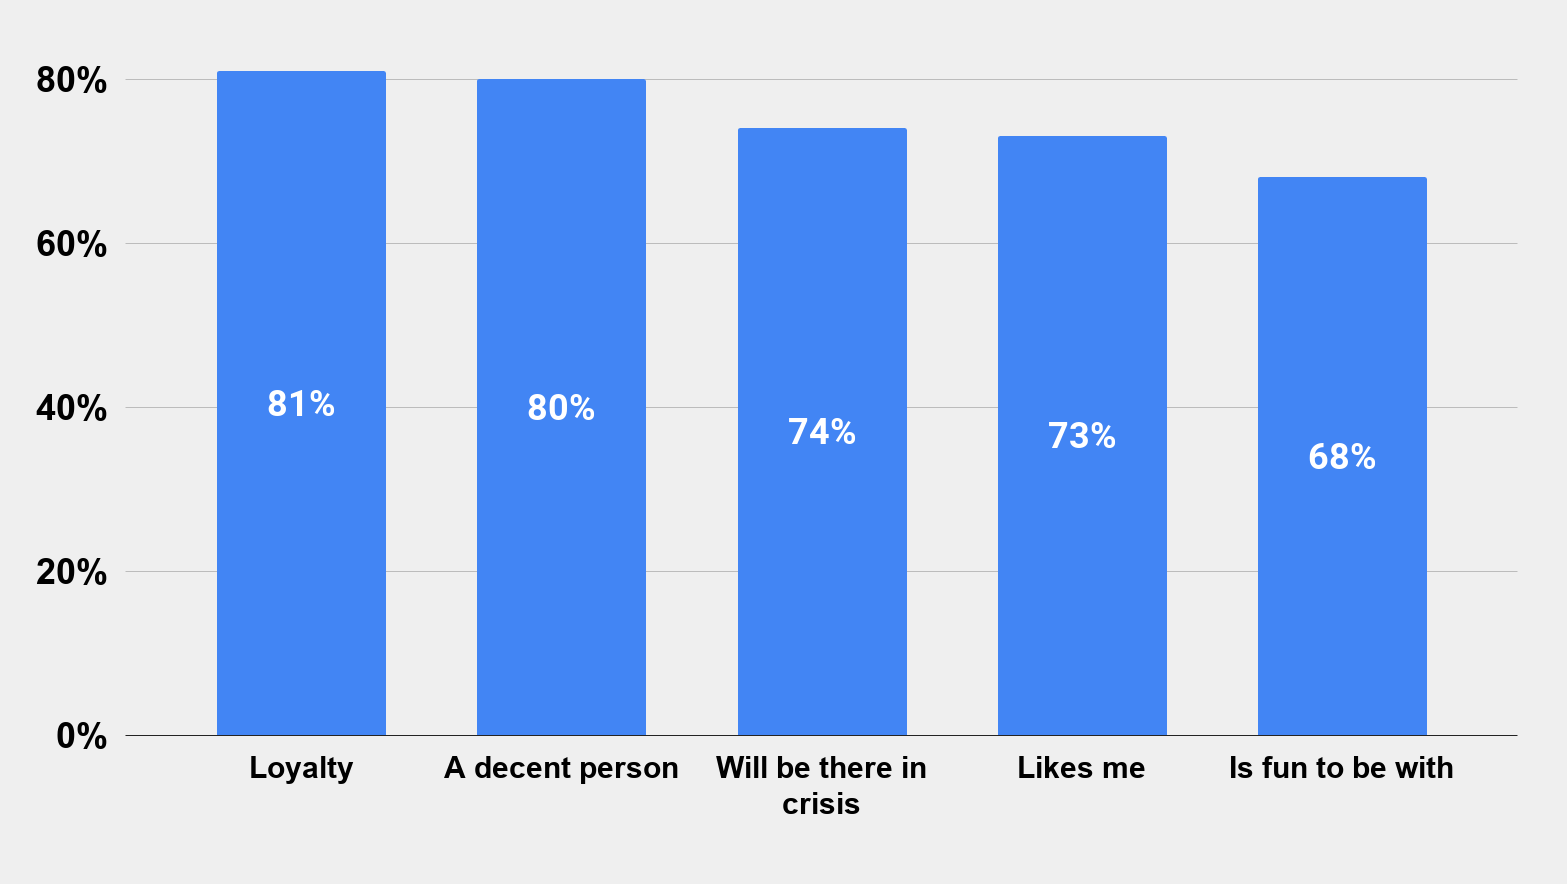 Which Qualities Do You Look For in Close Friends (US) 2013